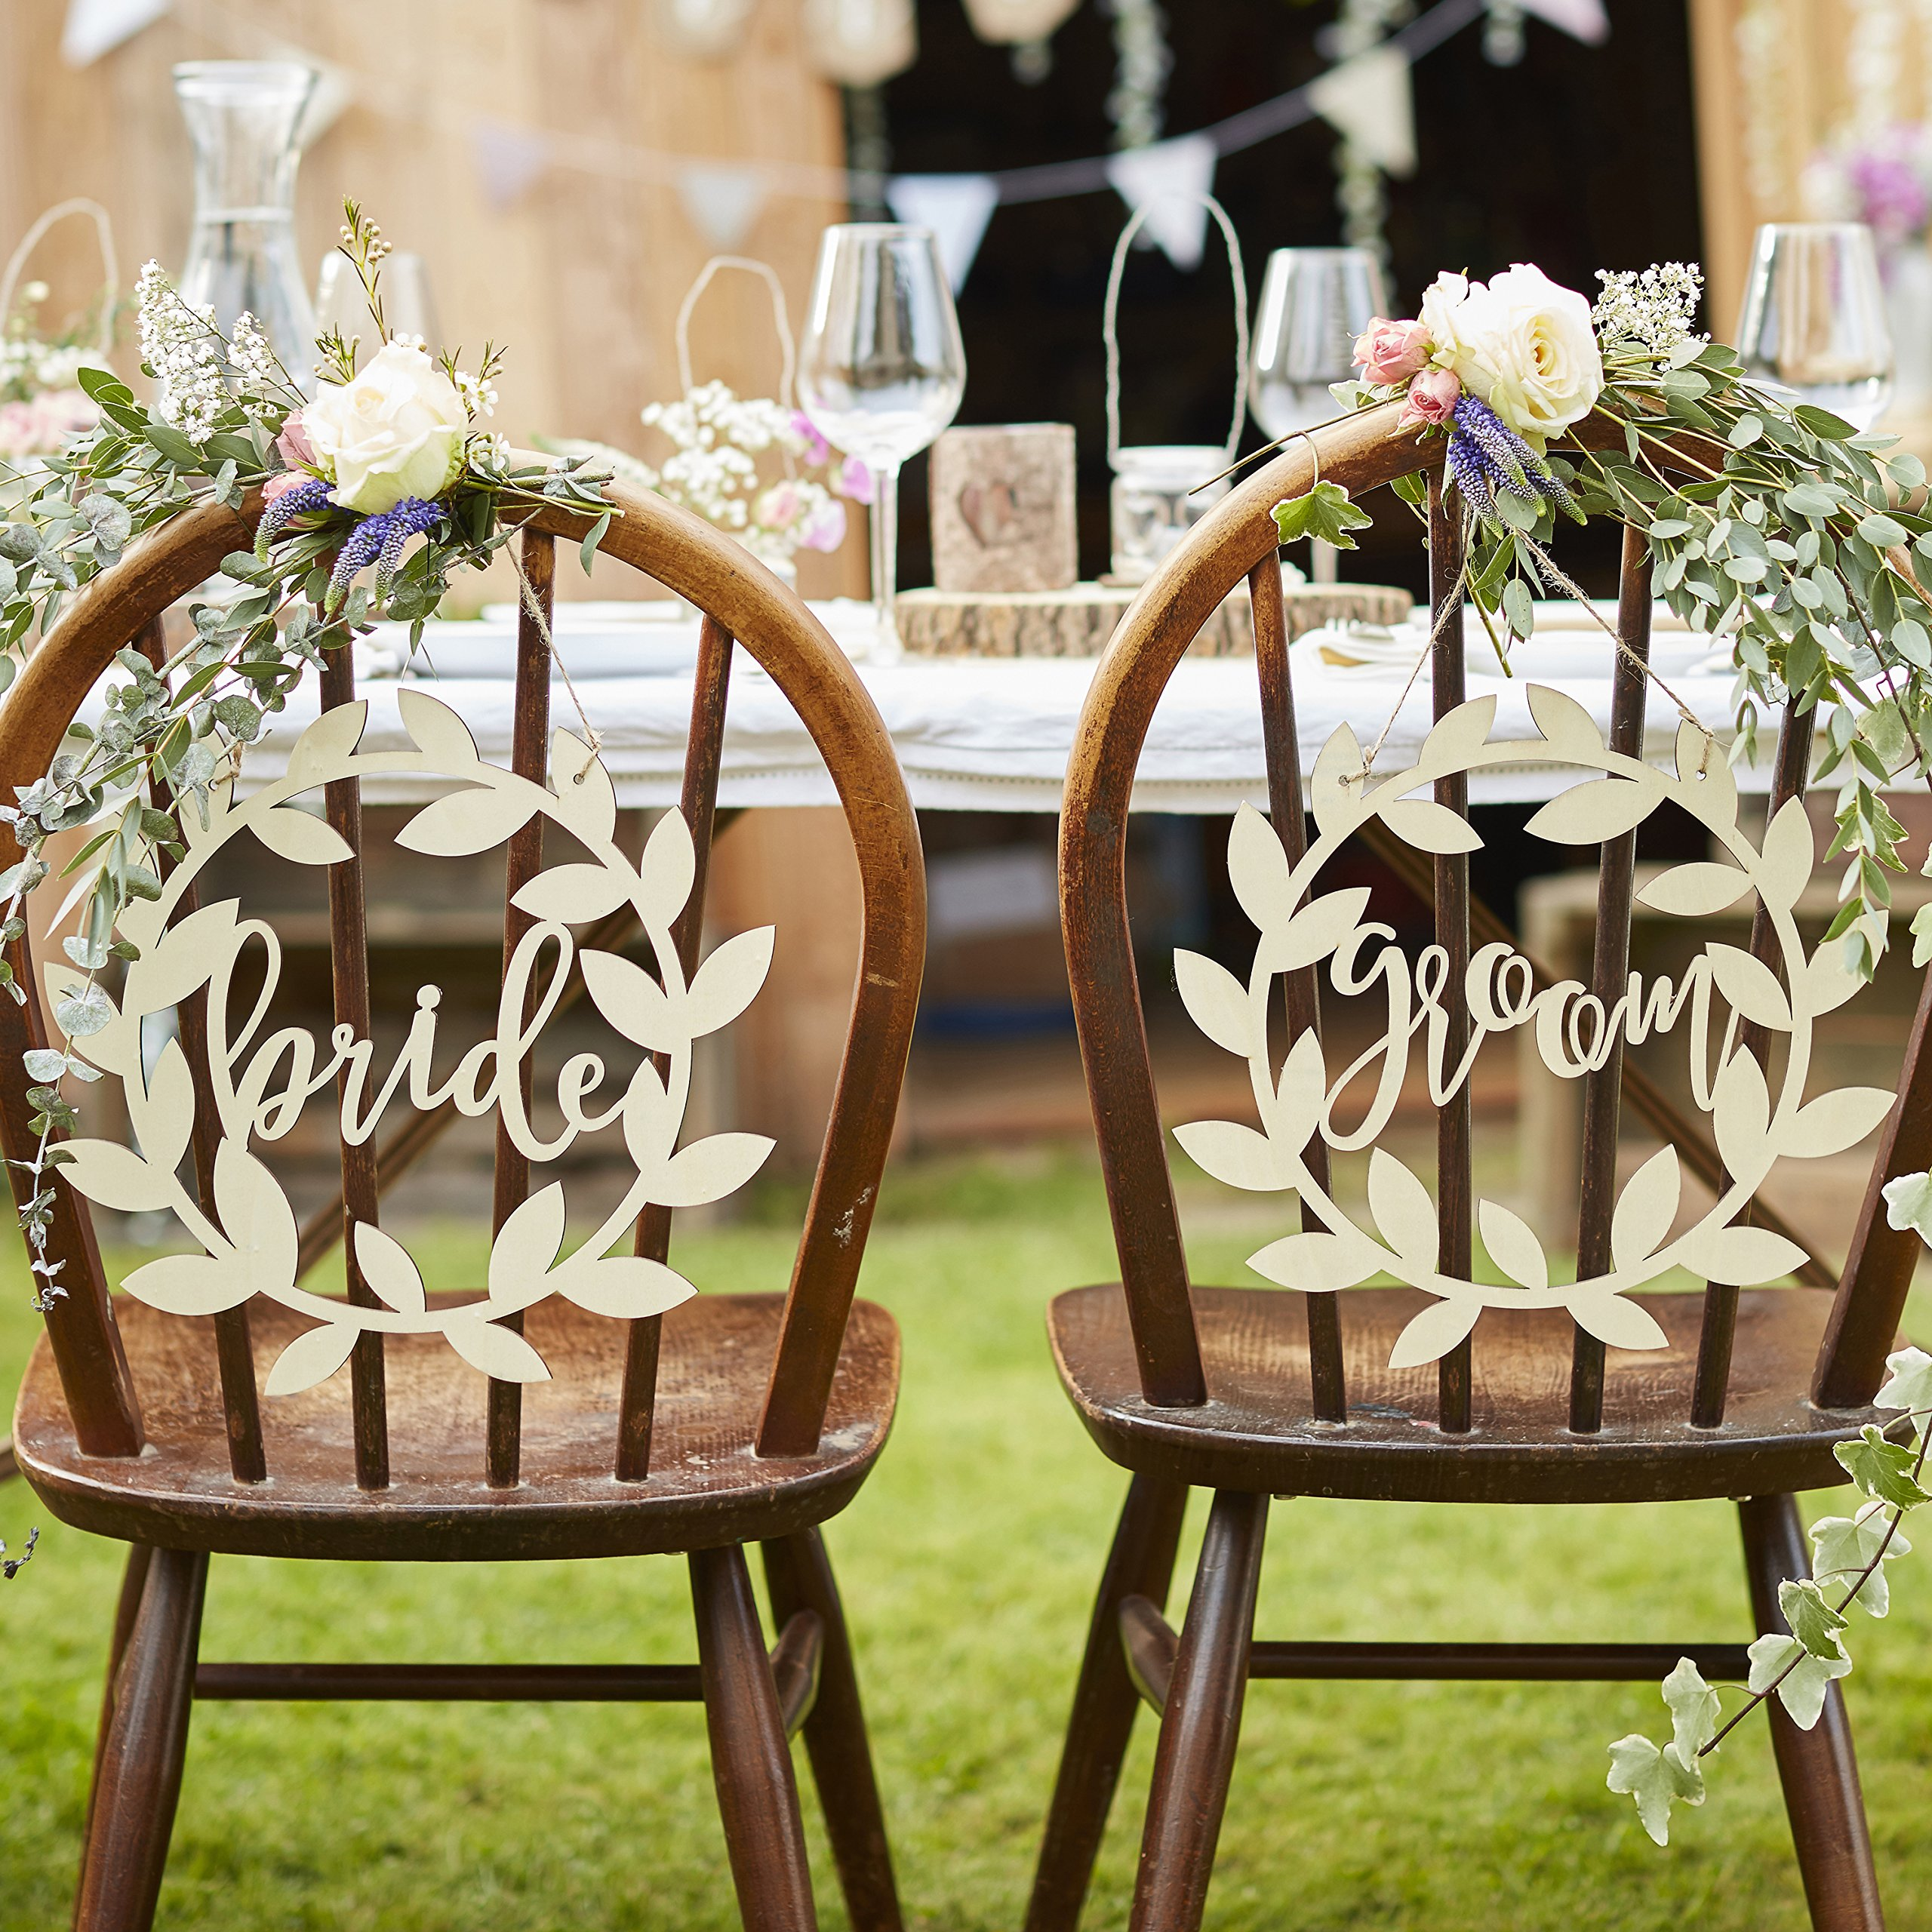 New Ginger Ray Mr And Mrs Wooden Chair Hanging Sign Wedding Decorations